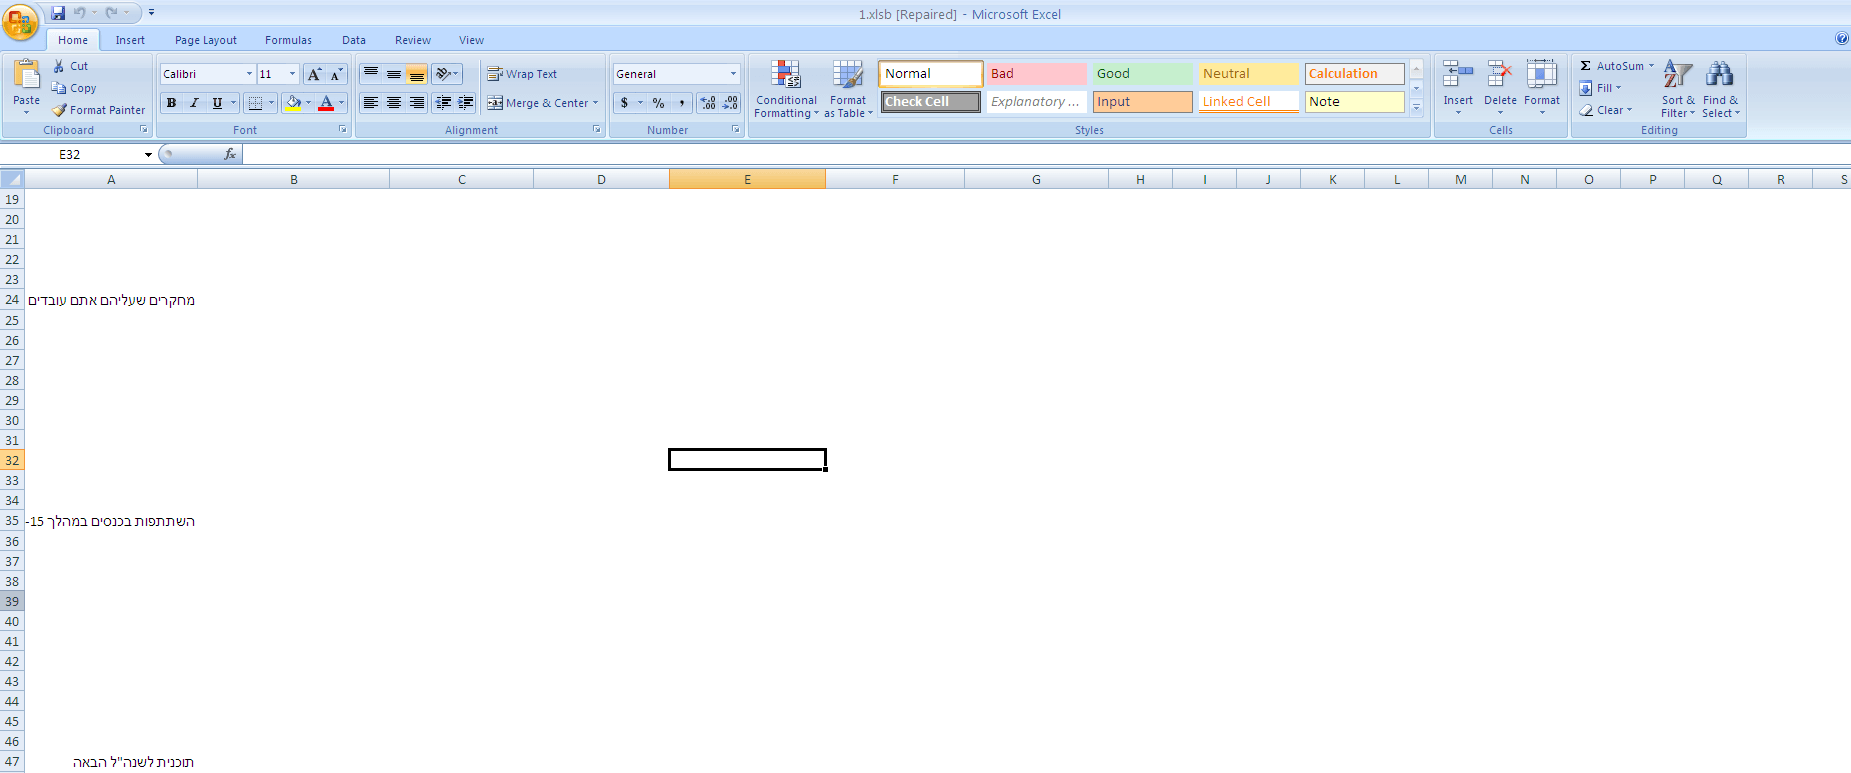 Ysis Of Malicious Excel Spreadsheet By Monnappa K A